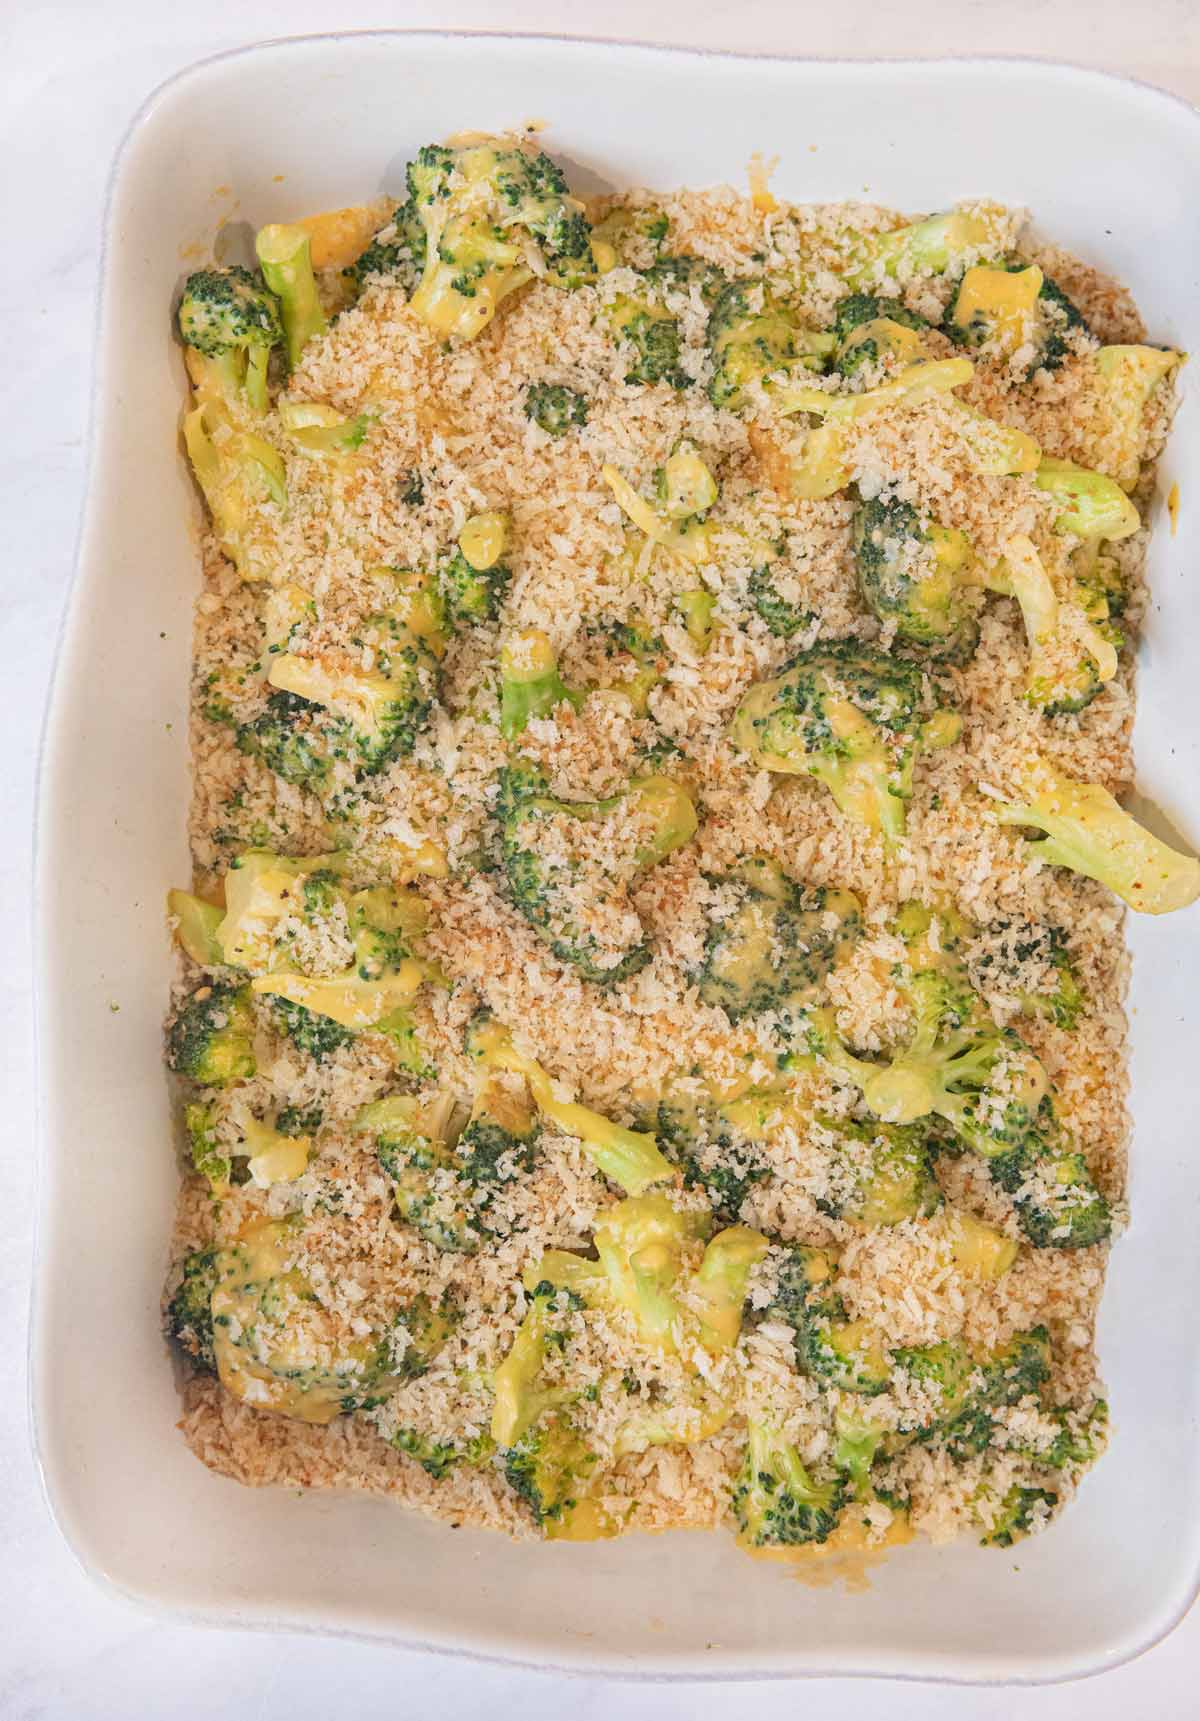 Cheesy Garlic Casserole in baking dish coated with bread crumbs before baking